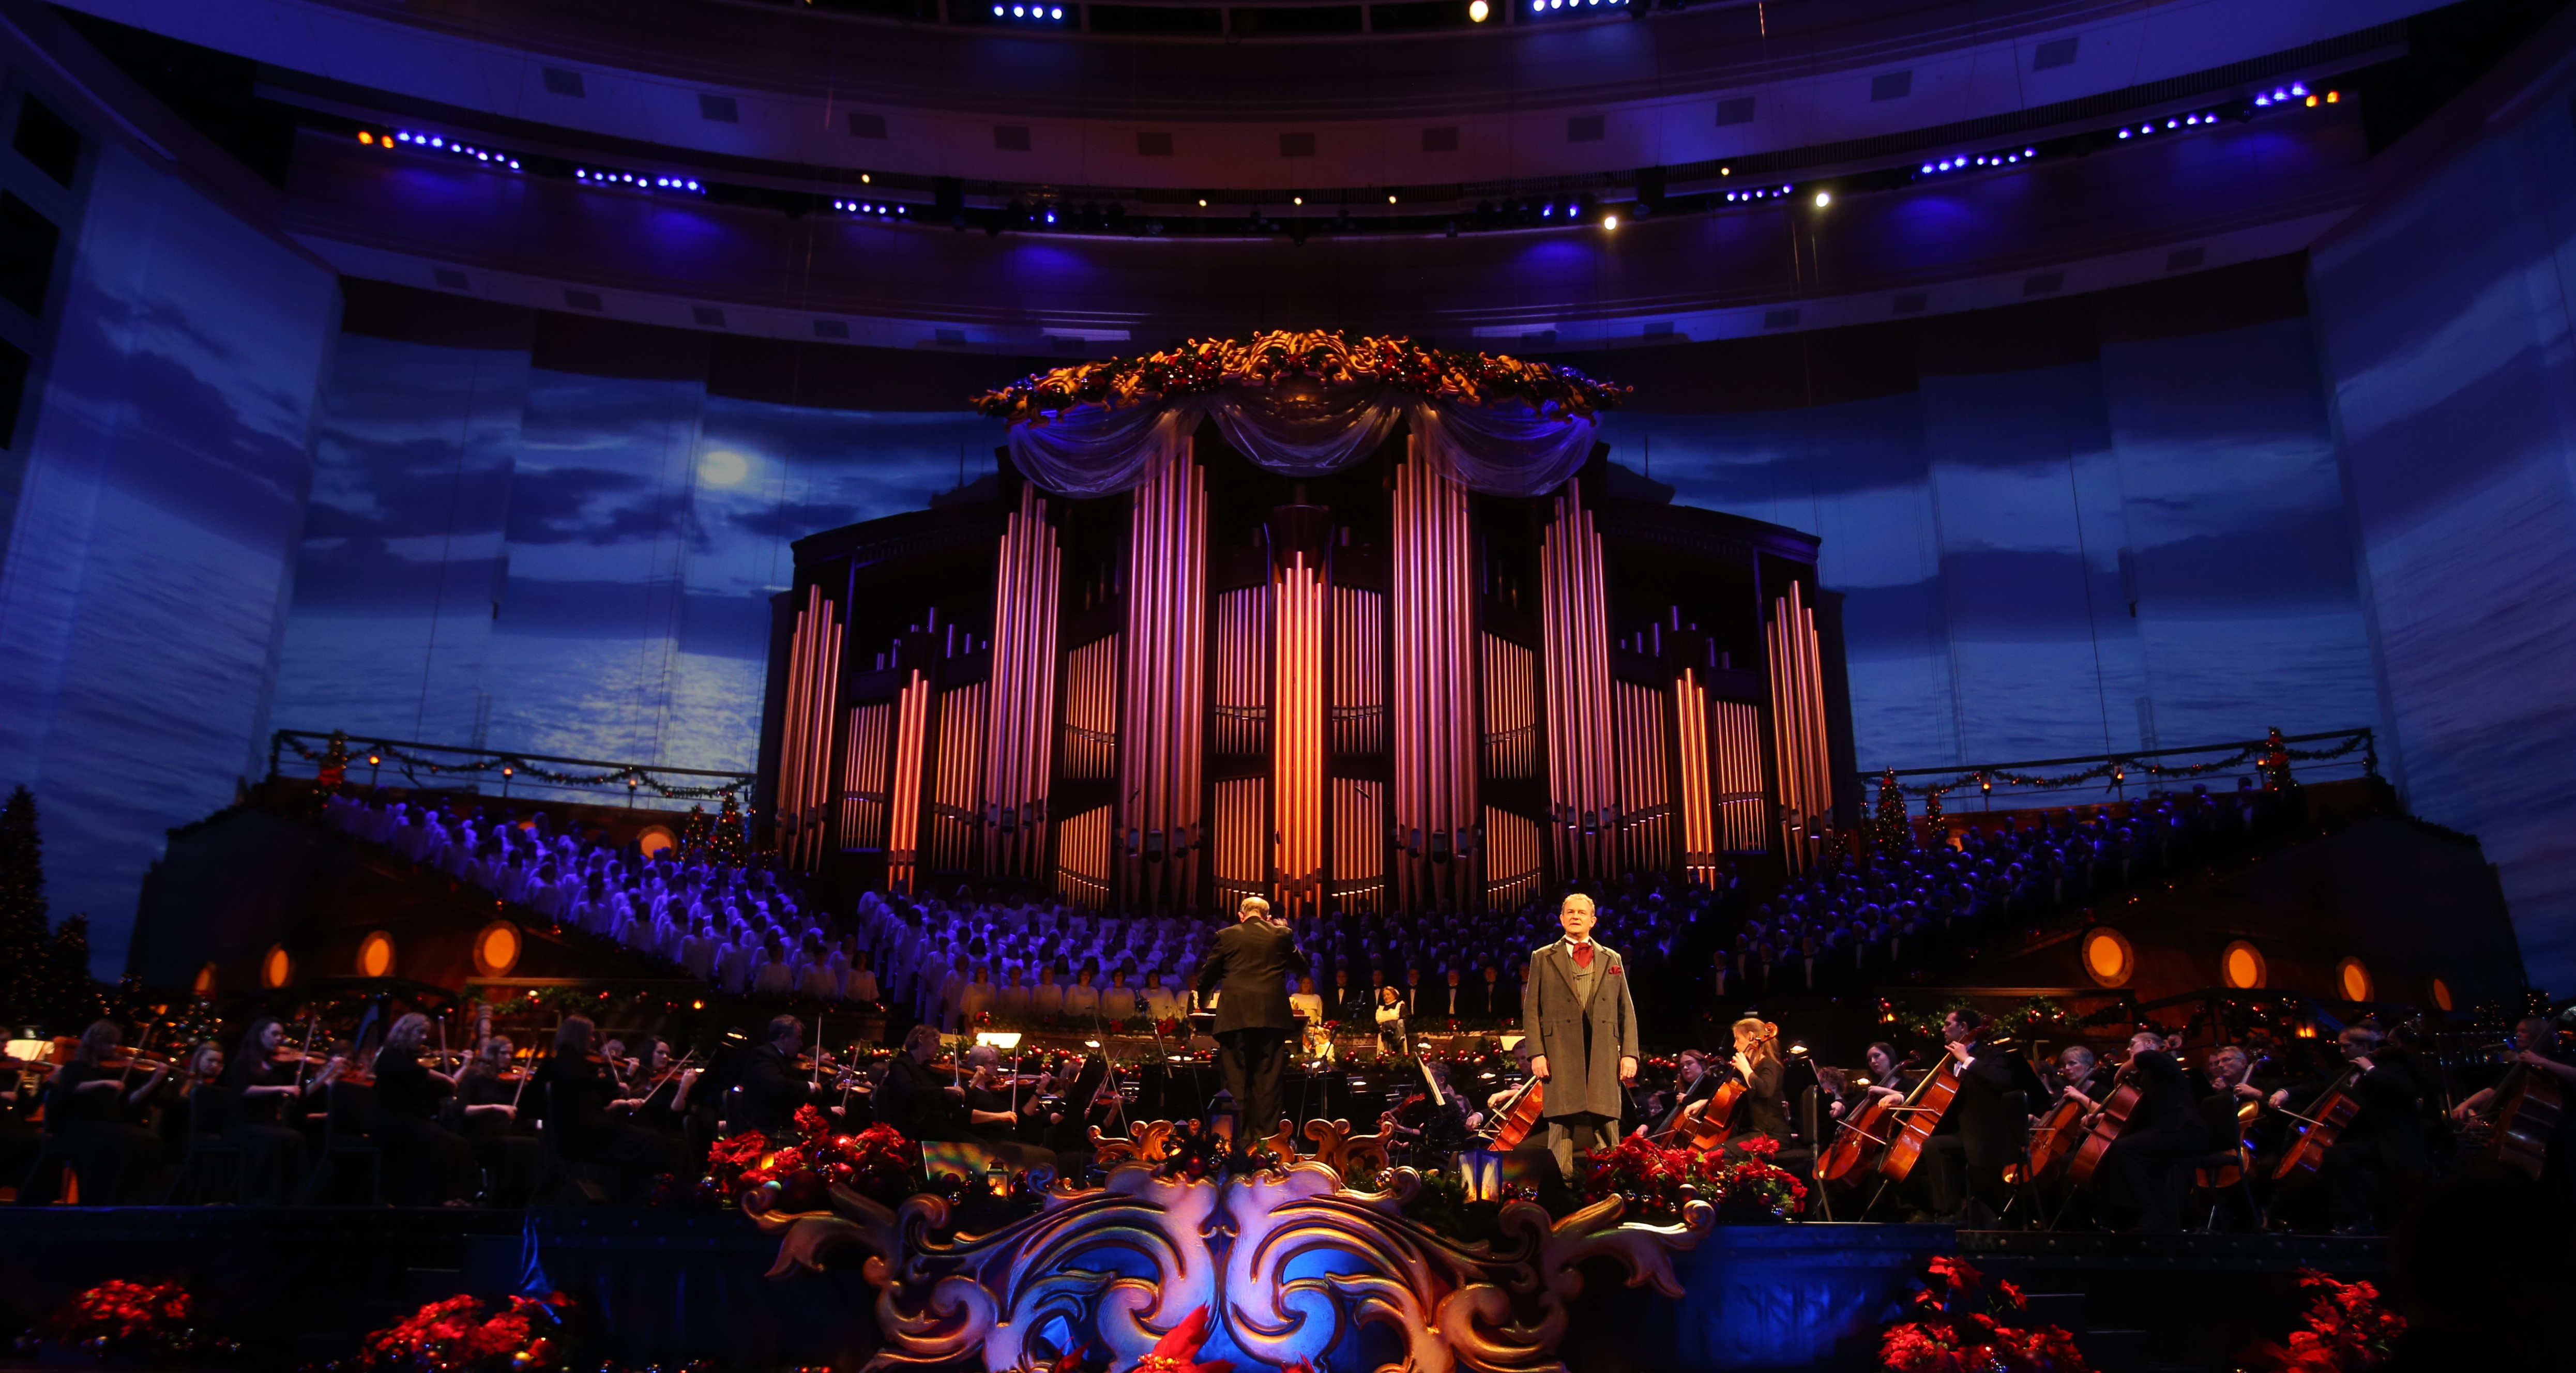 BYUtv holiday programming includes the 15th annual Christmas with the Mormon Tabernacle Choir starring Hugh Bonneville along with Sutton Foster.